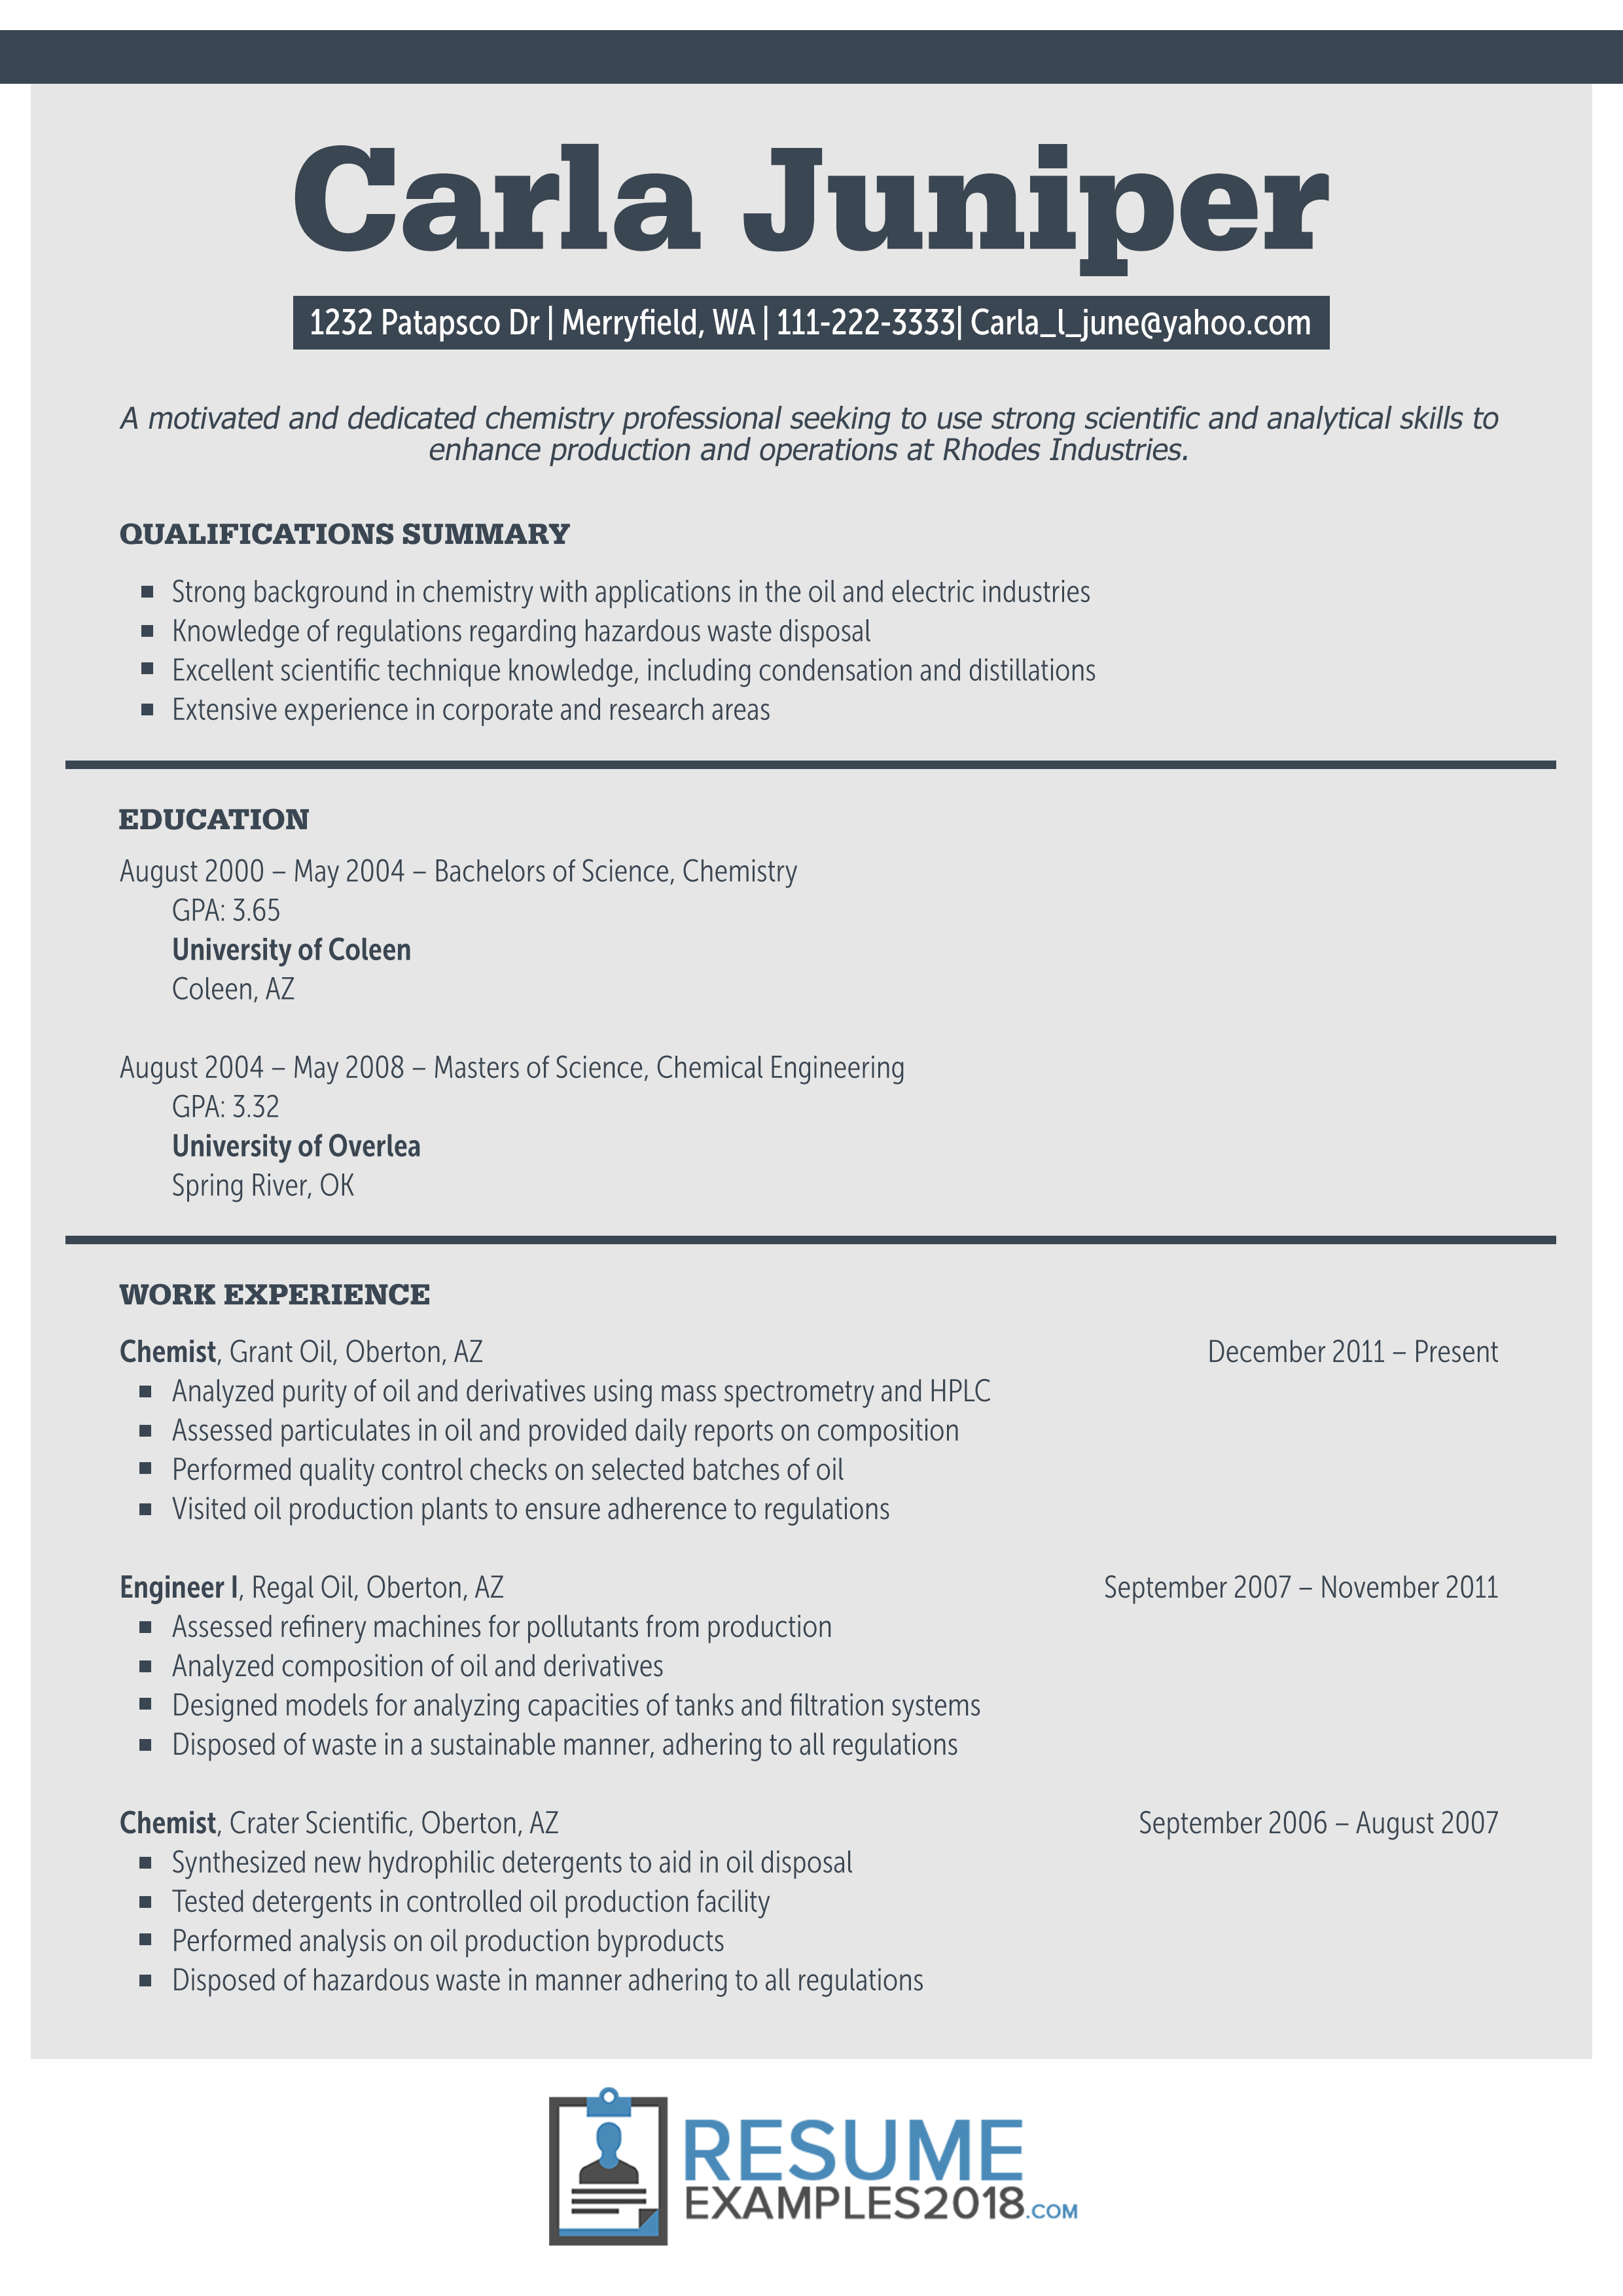 Resume Format 2018 Examples